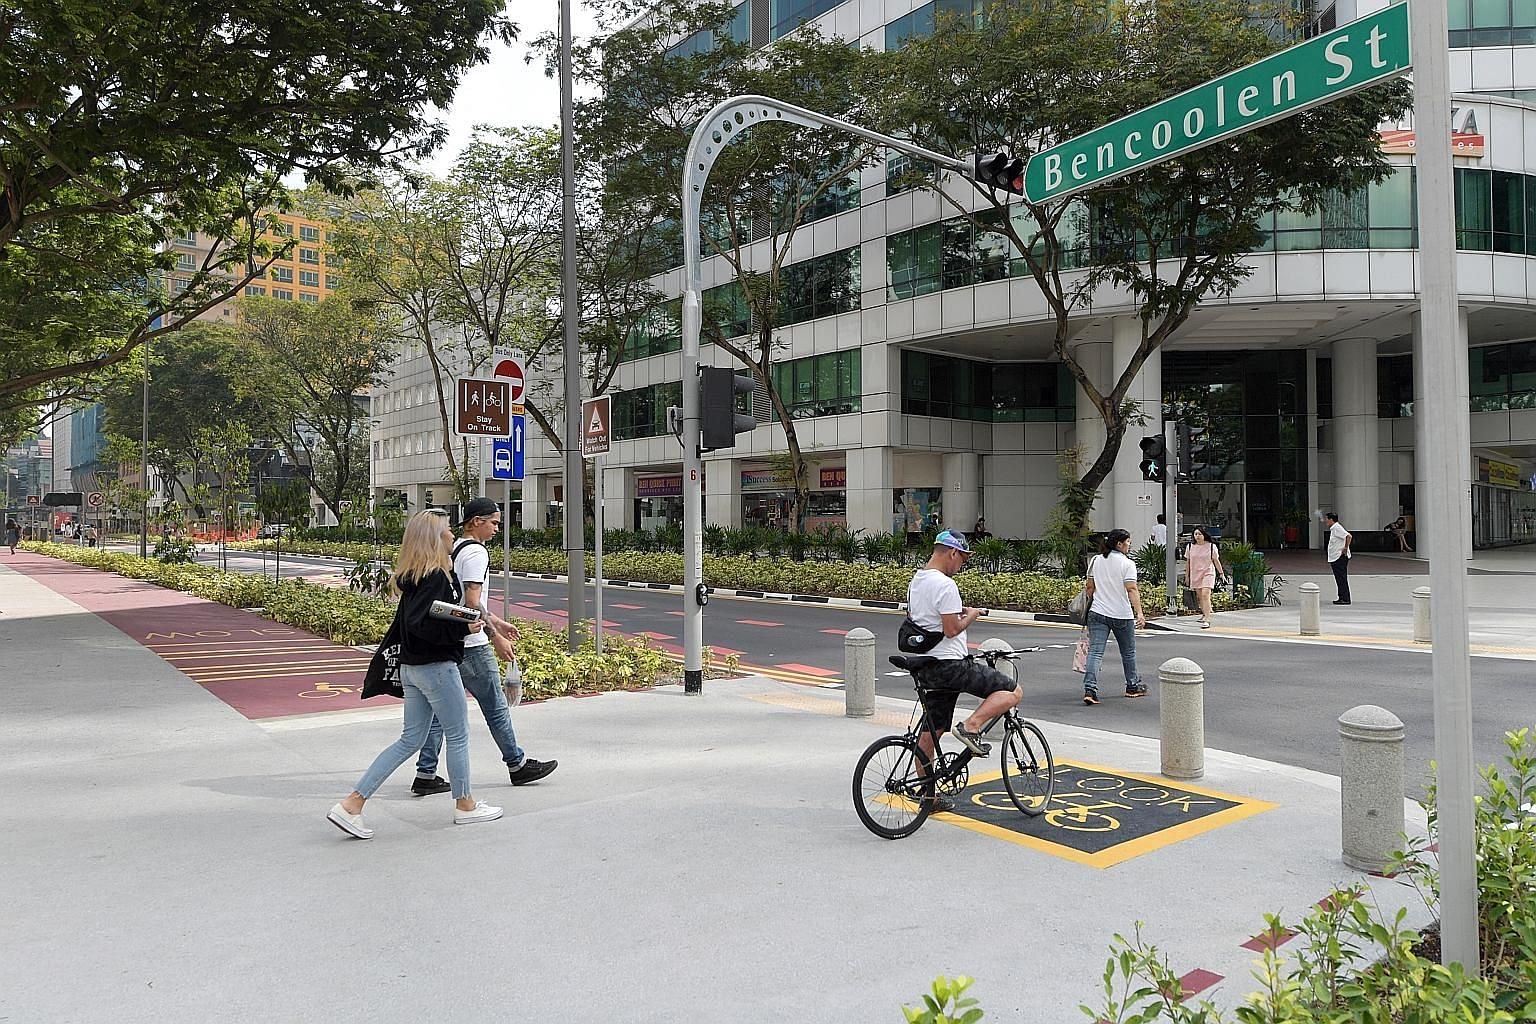 New features in Bencoolen Street include a wider pedestrian walkway and a cycling path as part of Singapore's car-lite drive.